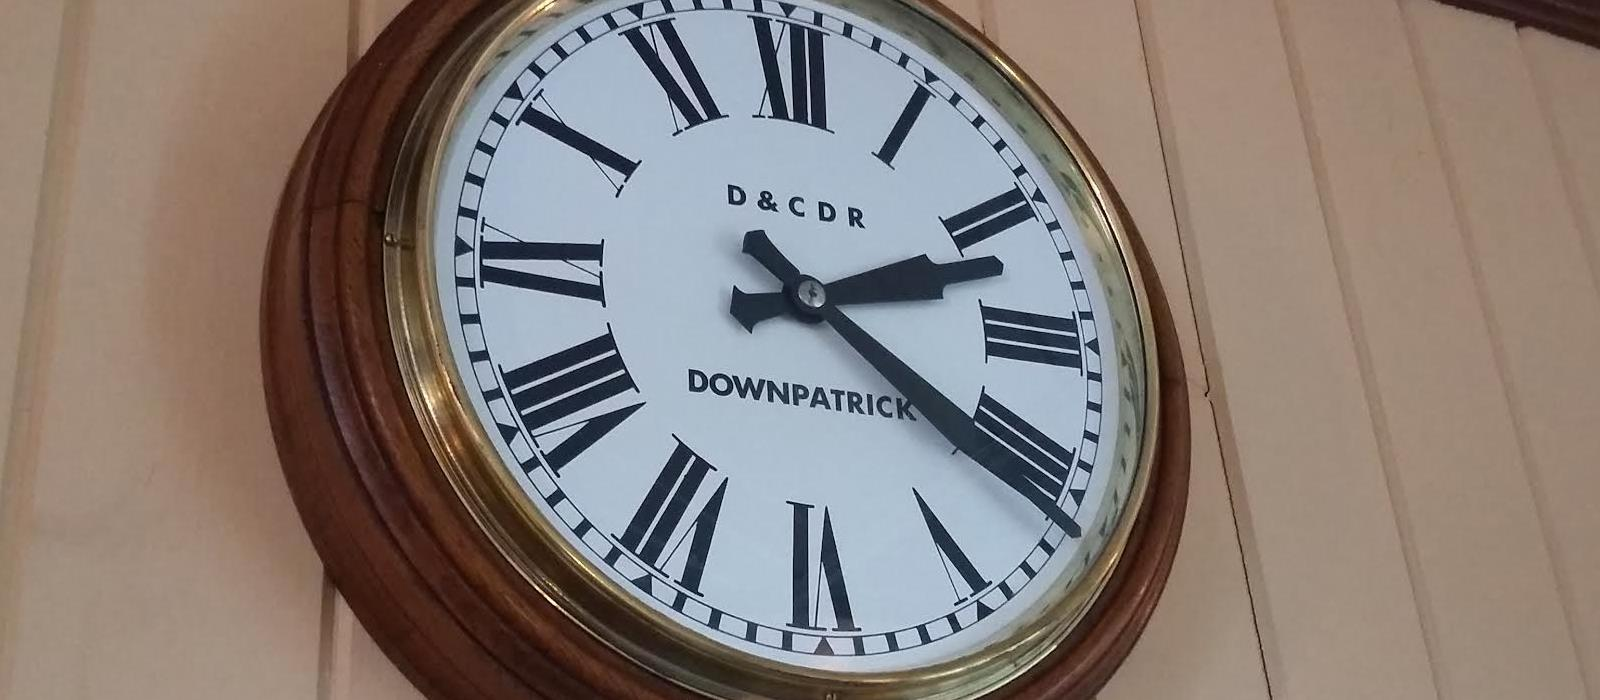 The DCDR clock in our booking office